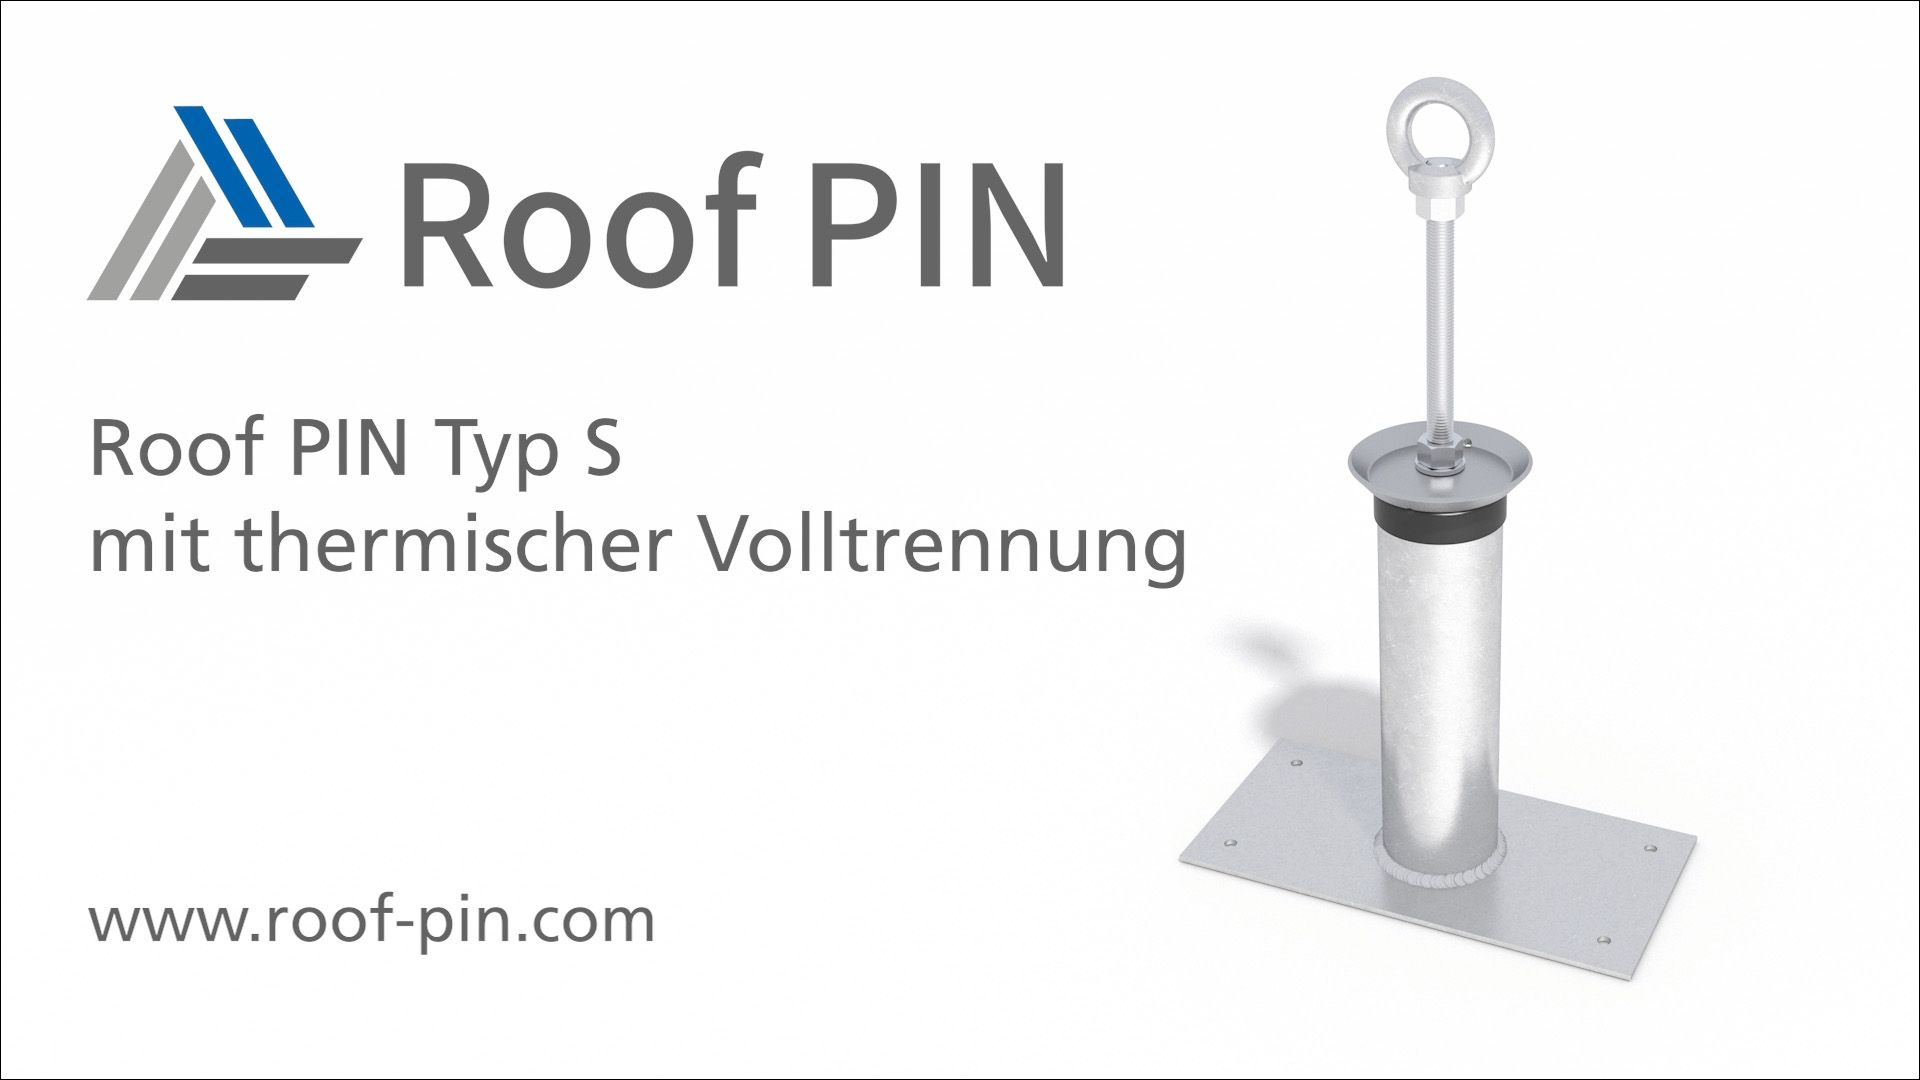 Video Roof-PIN Typ S